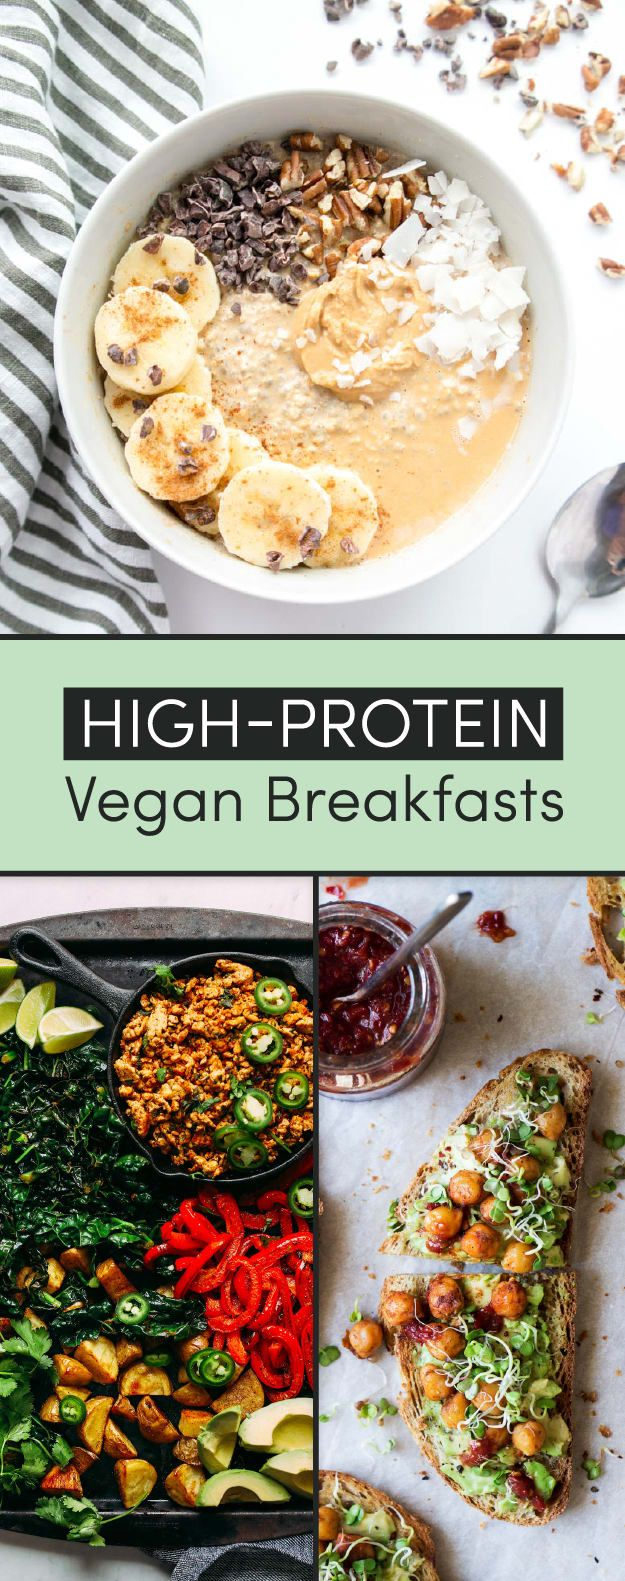 14 Protein-Packed Vegan Breakfasts - https://www.buzzfeed.com/jesseszewczyk/high-protein-vegan-breakfasts?utm_term=.bneywYo4A#.kqE2OoJ1Q